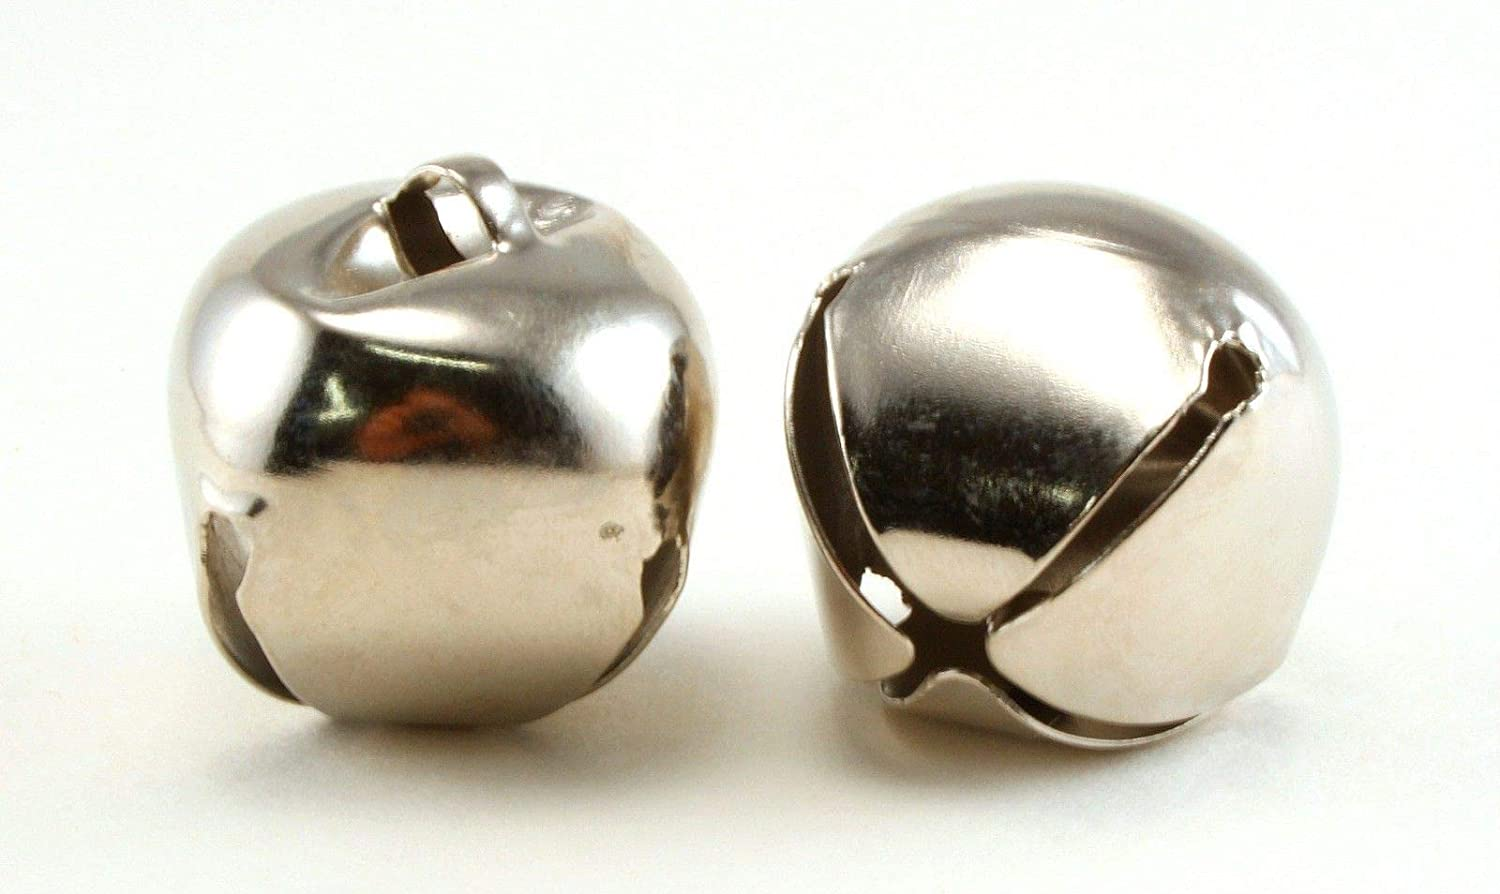 2 Inch 51mm Extra Large Giant Jumbo Silver Craft Jingle Bells Bulk 12 Pieces Art Cove